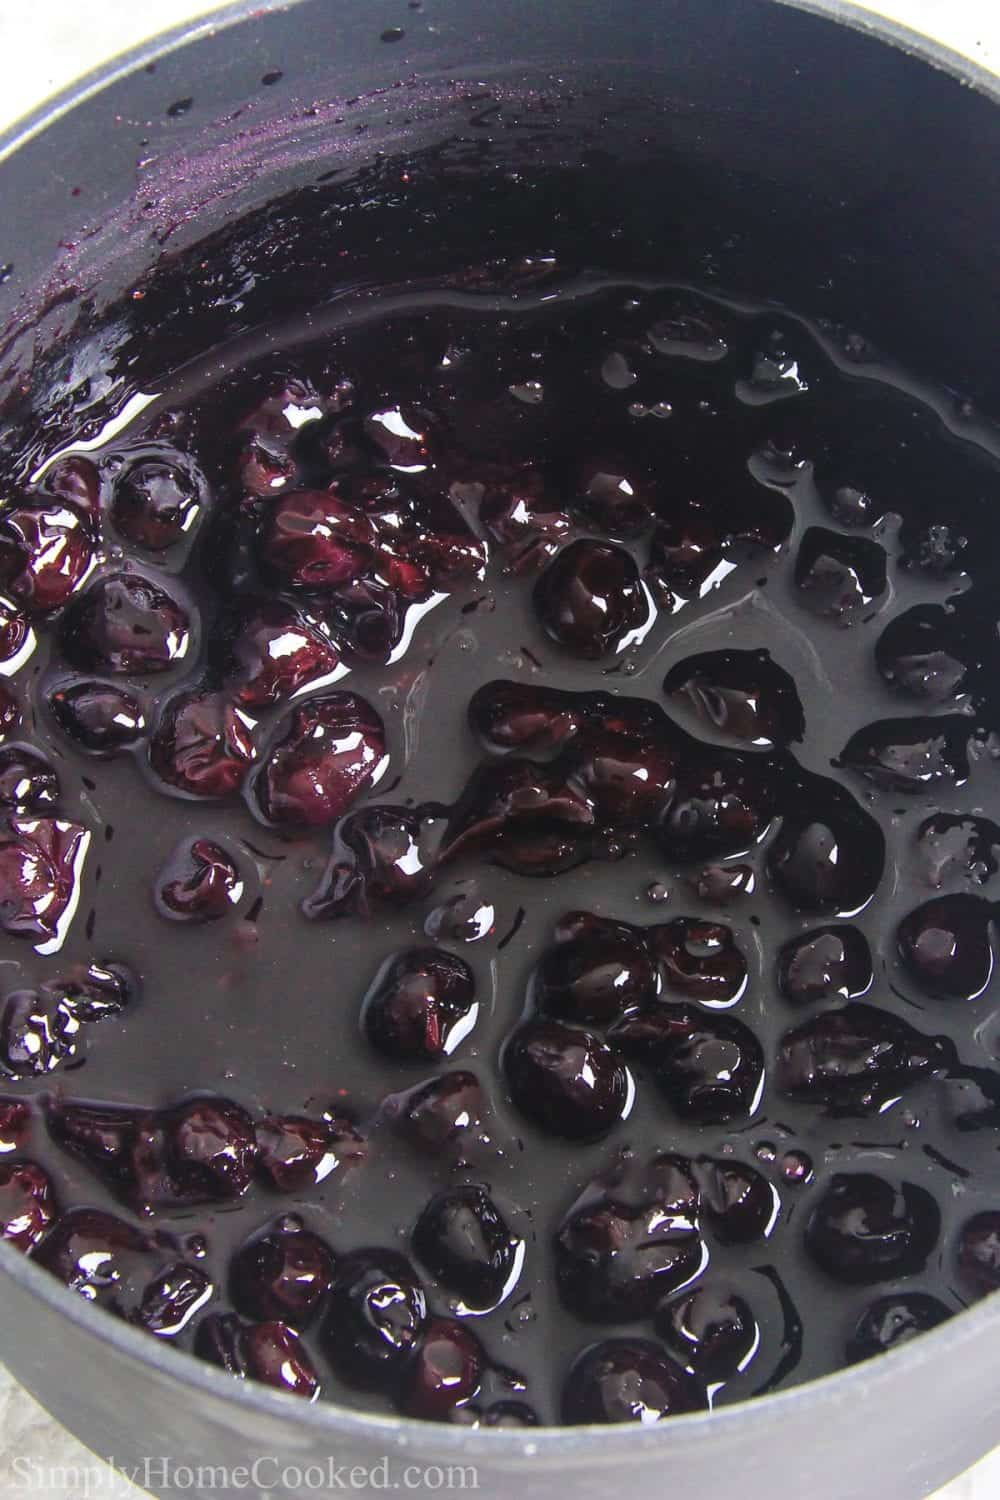 cooked blueberry pie filling in a saucepan